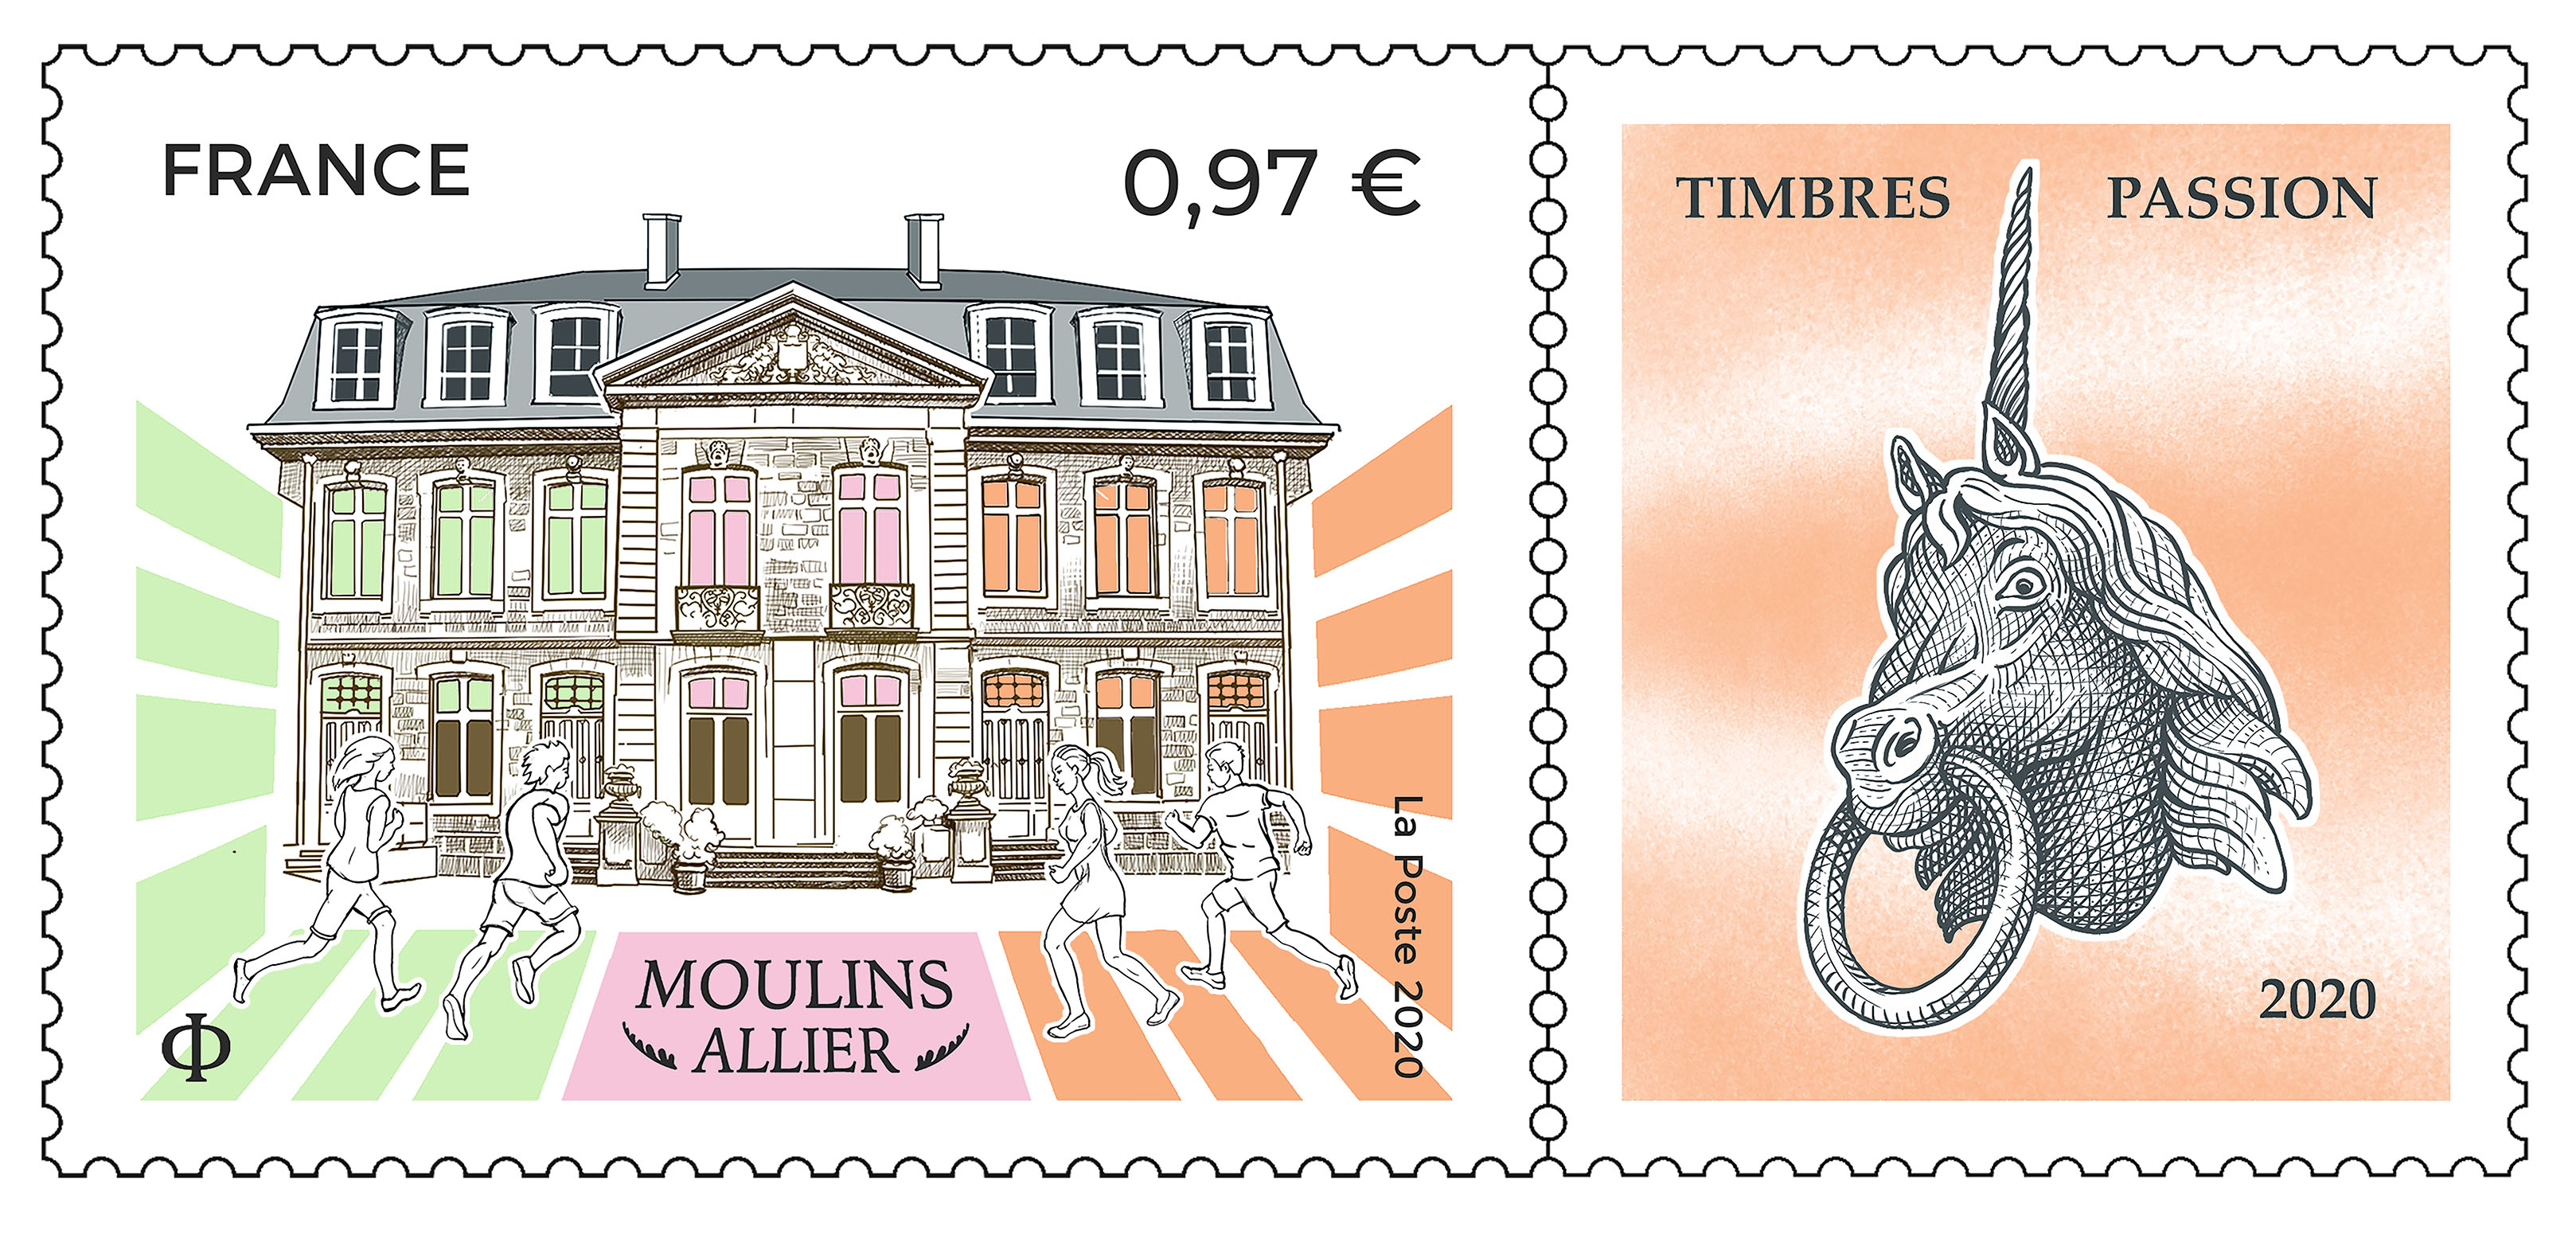 Emission Moulins (Allier) - Timbres Passion 2020